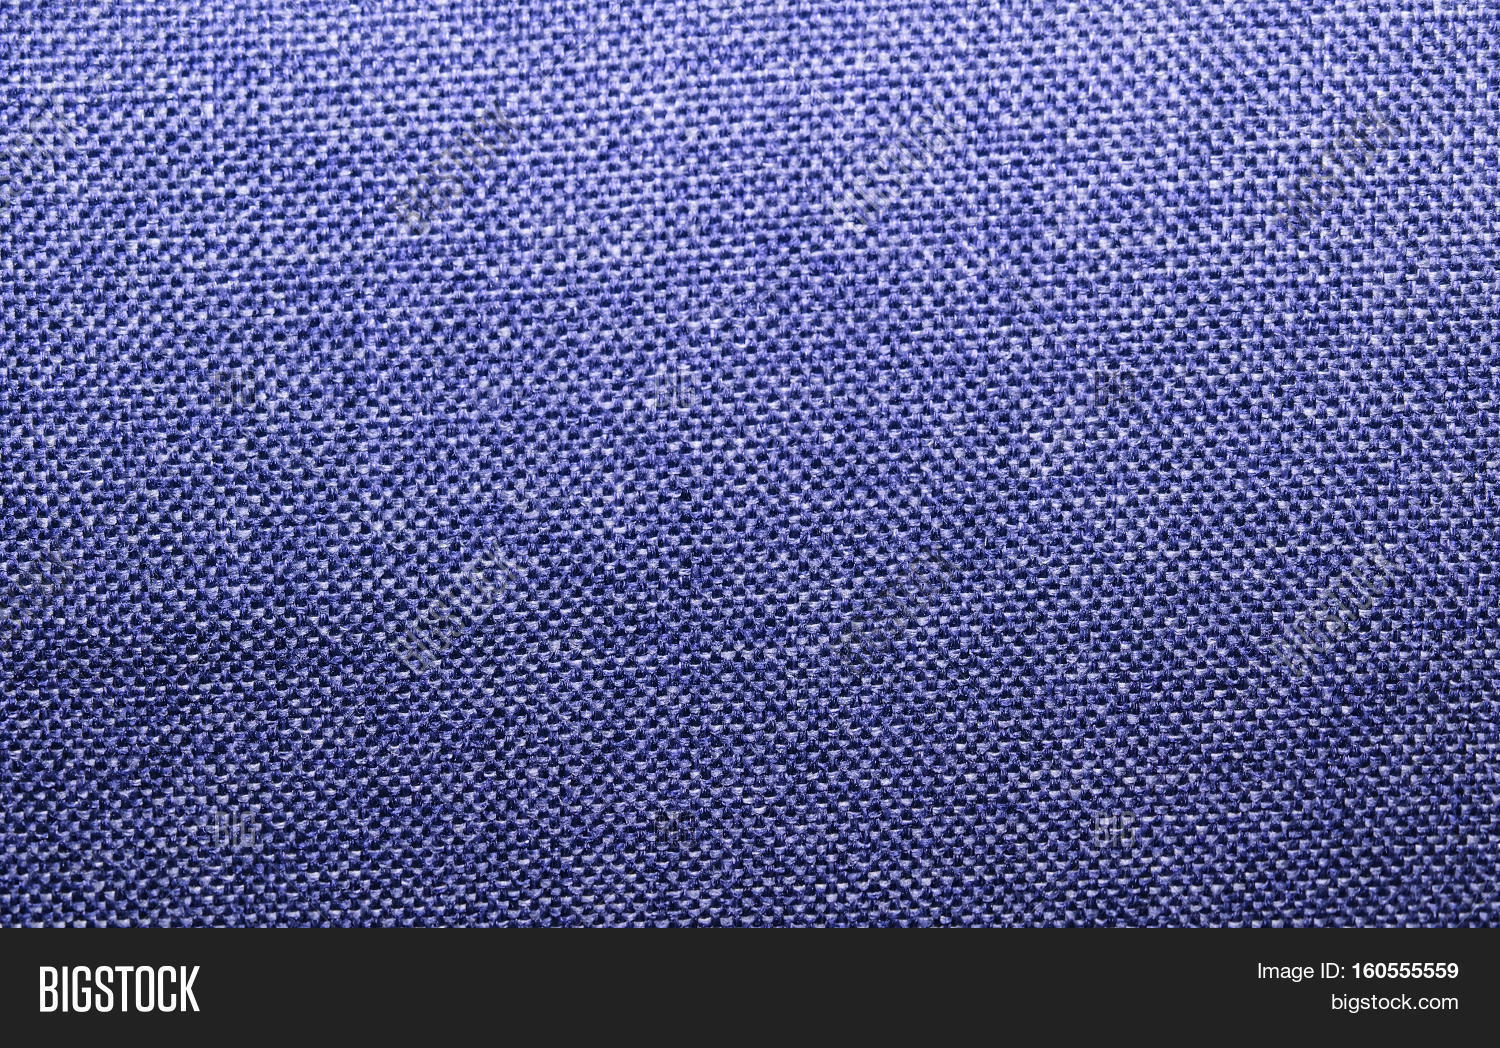 Texture Dense Fabric Image Photo Free Trial Bigstock